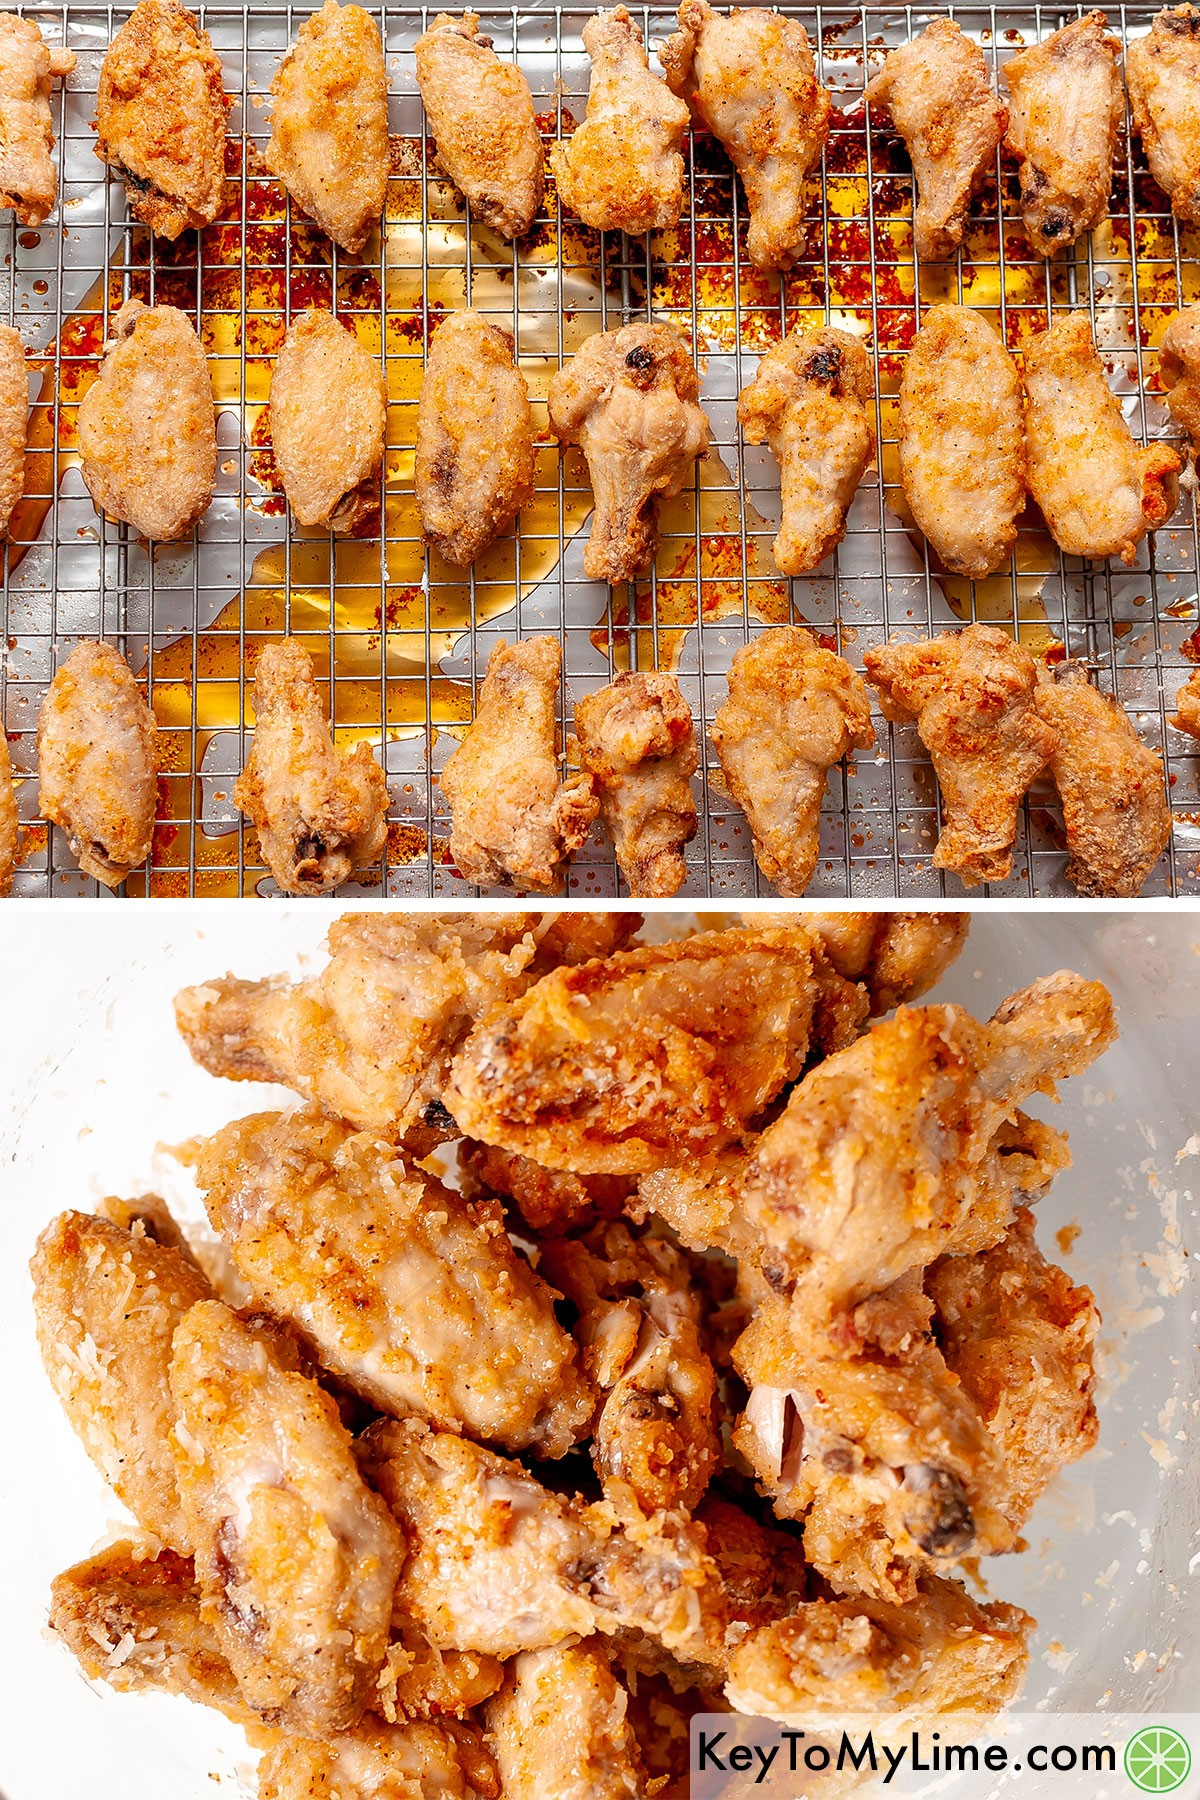 Coating cooked chicken wings in freshly grated parmesan.